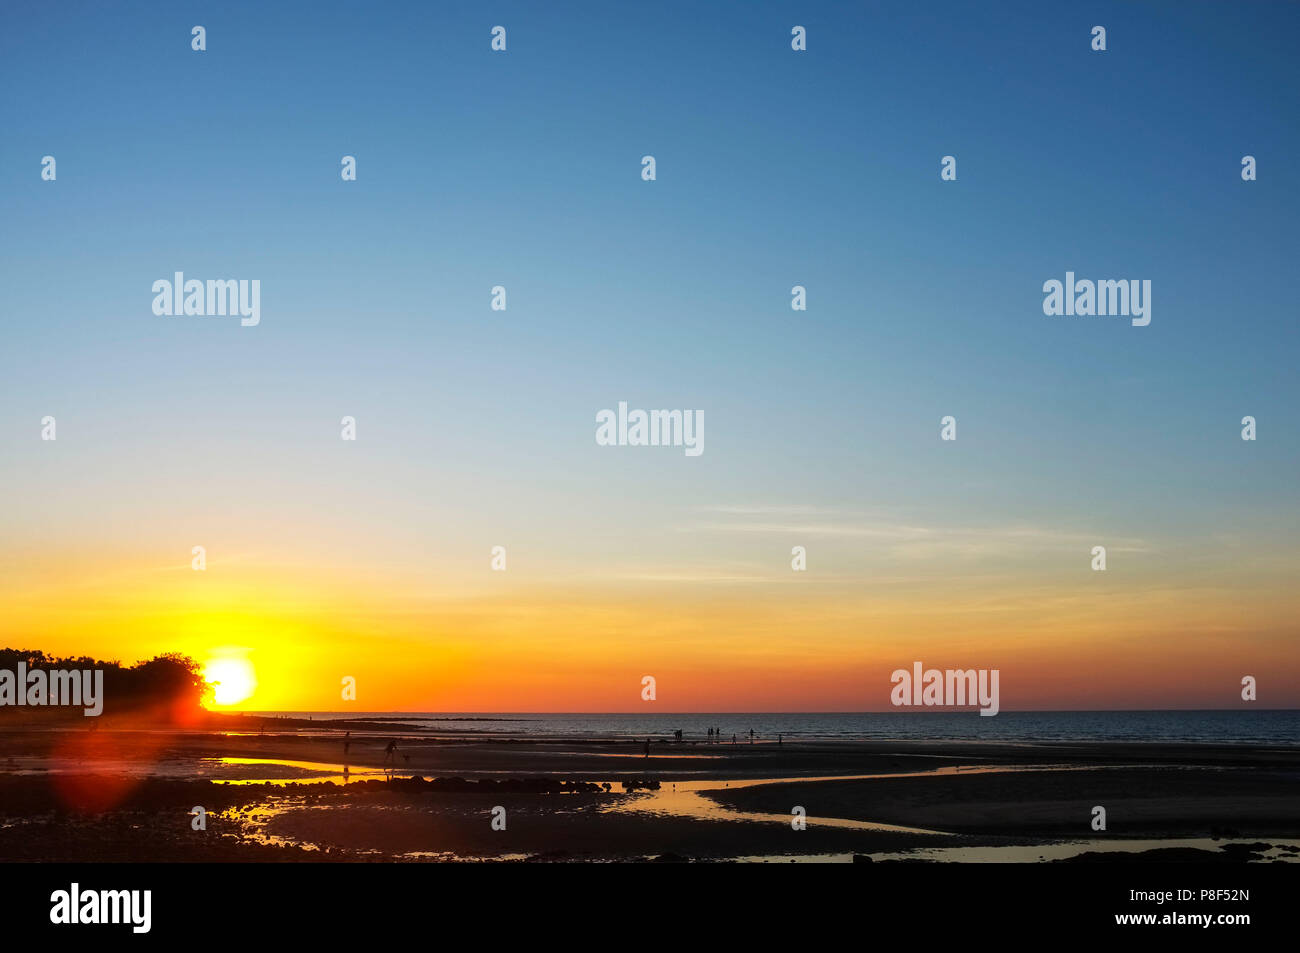 Nightcliff beach at sunset, with people silhouettes. In a suburb of Darwin NT Australia. - Stock Image